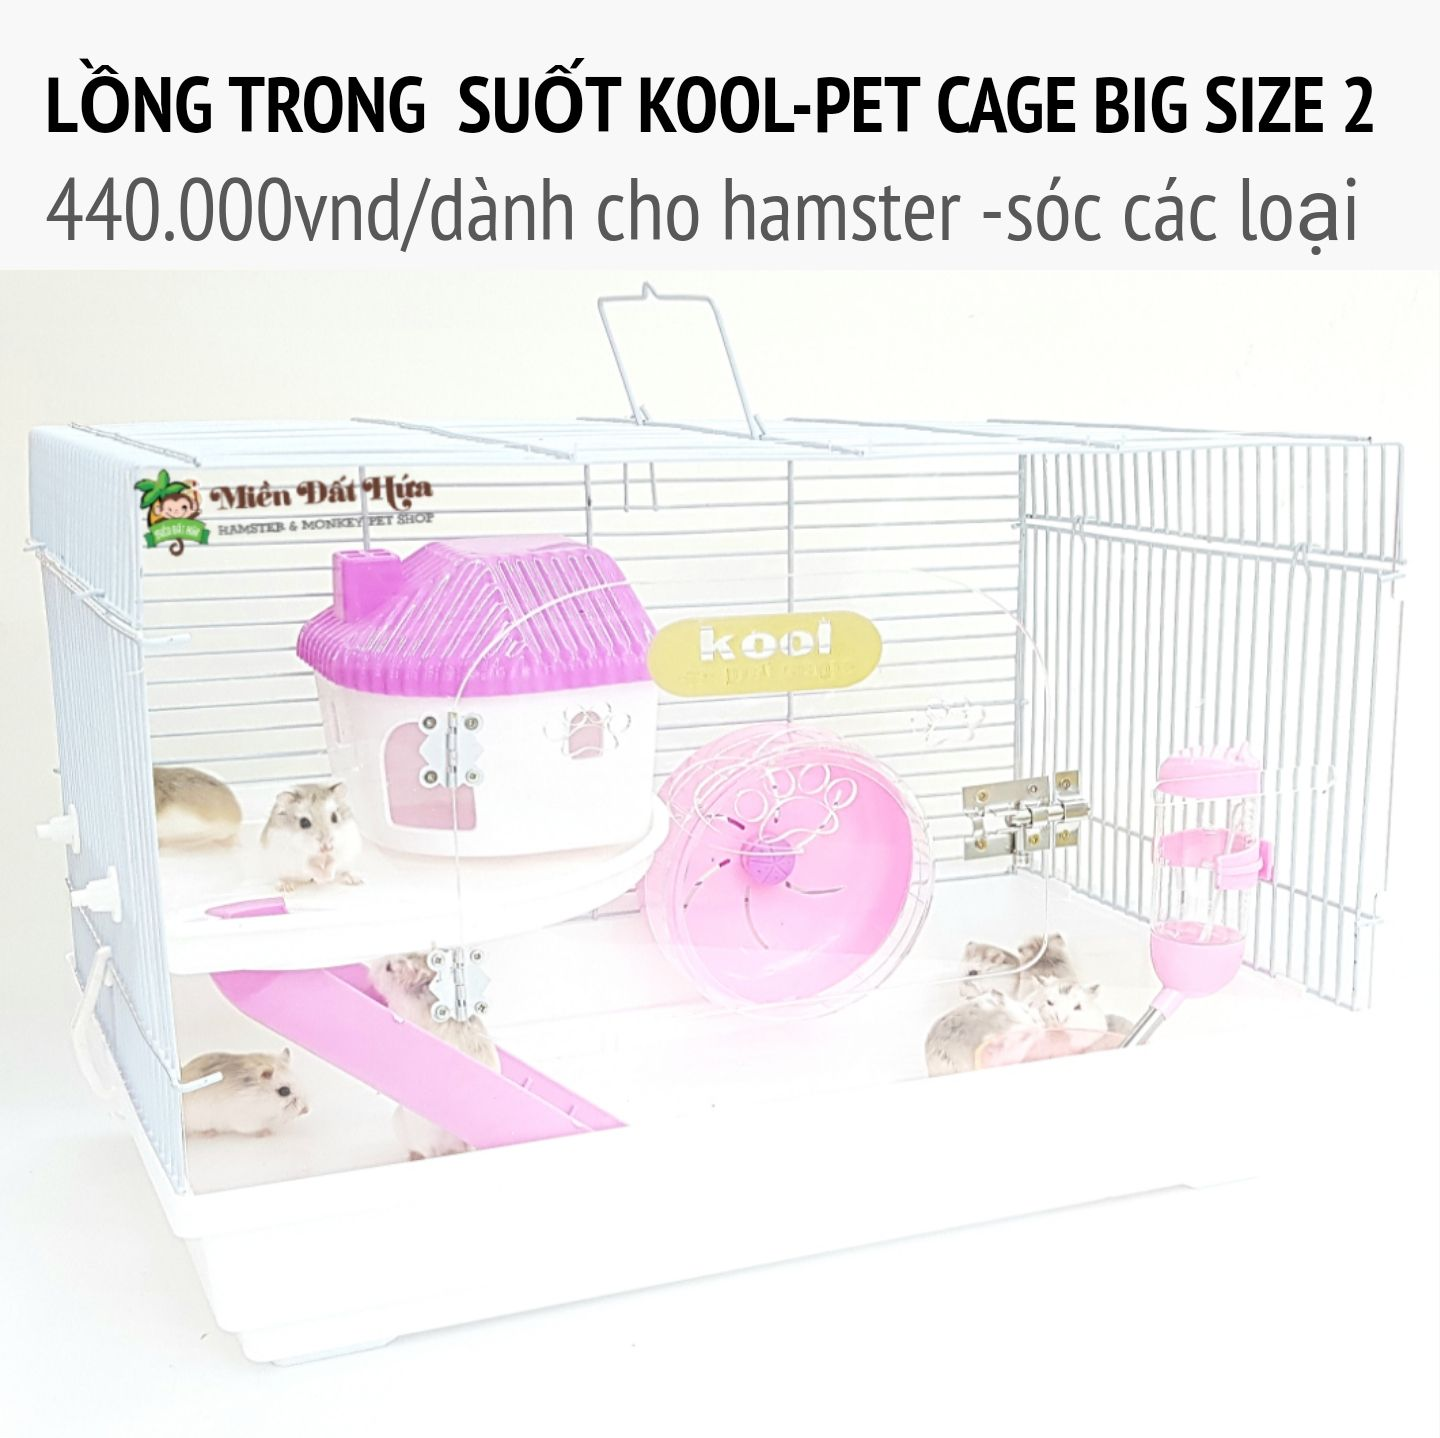 Lồng trong suốt big size kool-pet cage 2